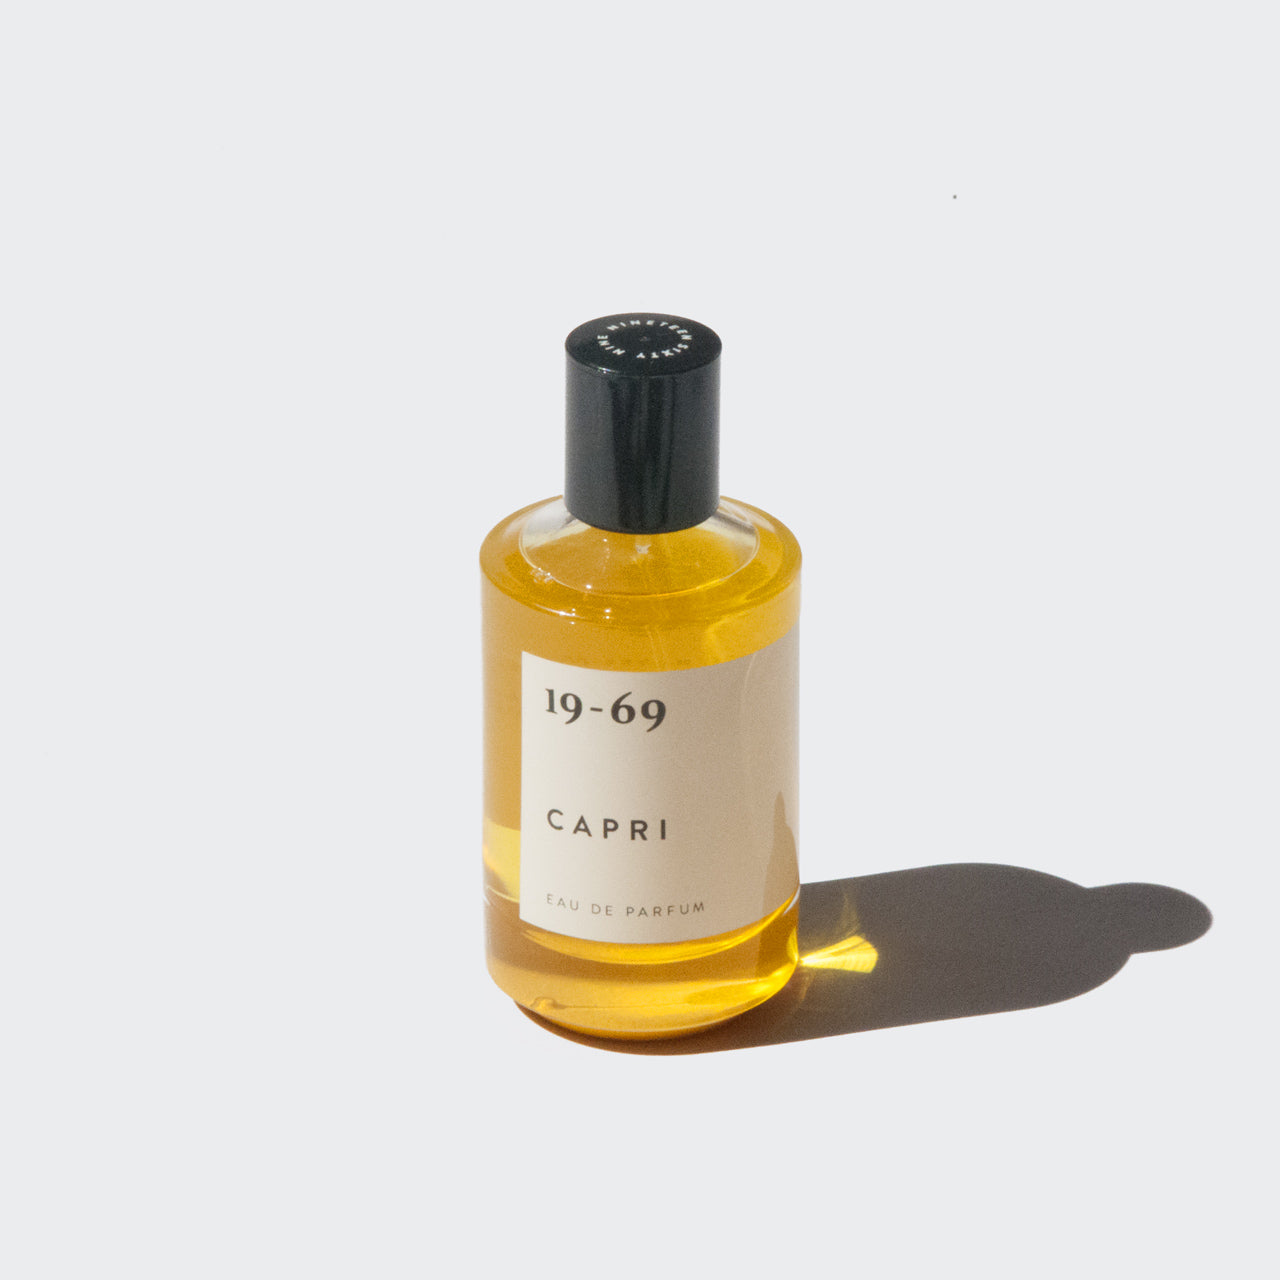 19-69 - Capri Eau de Parfum, available at LCD